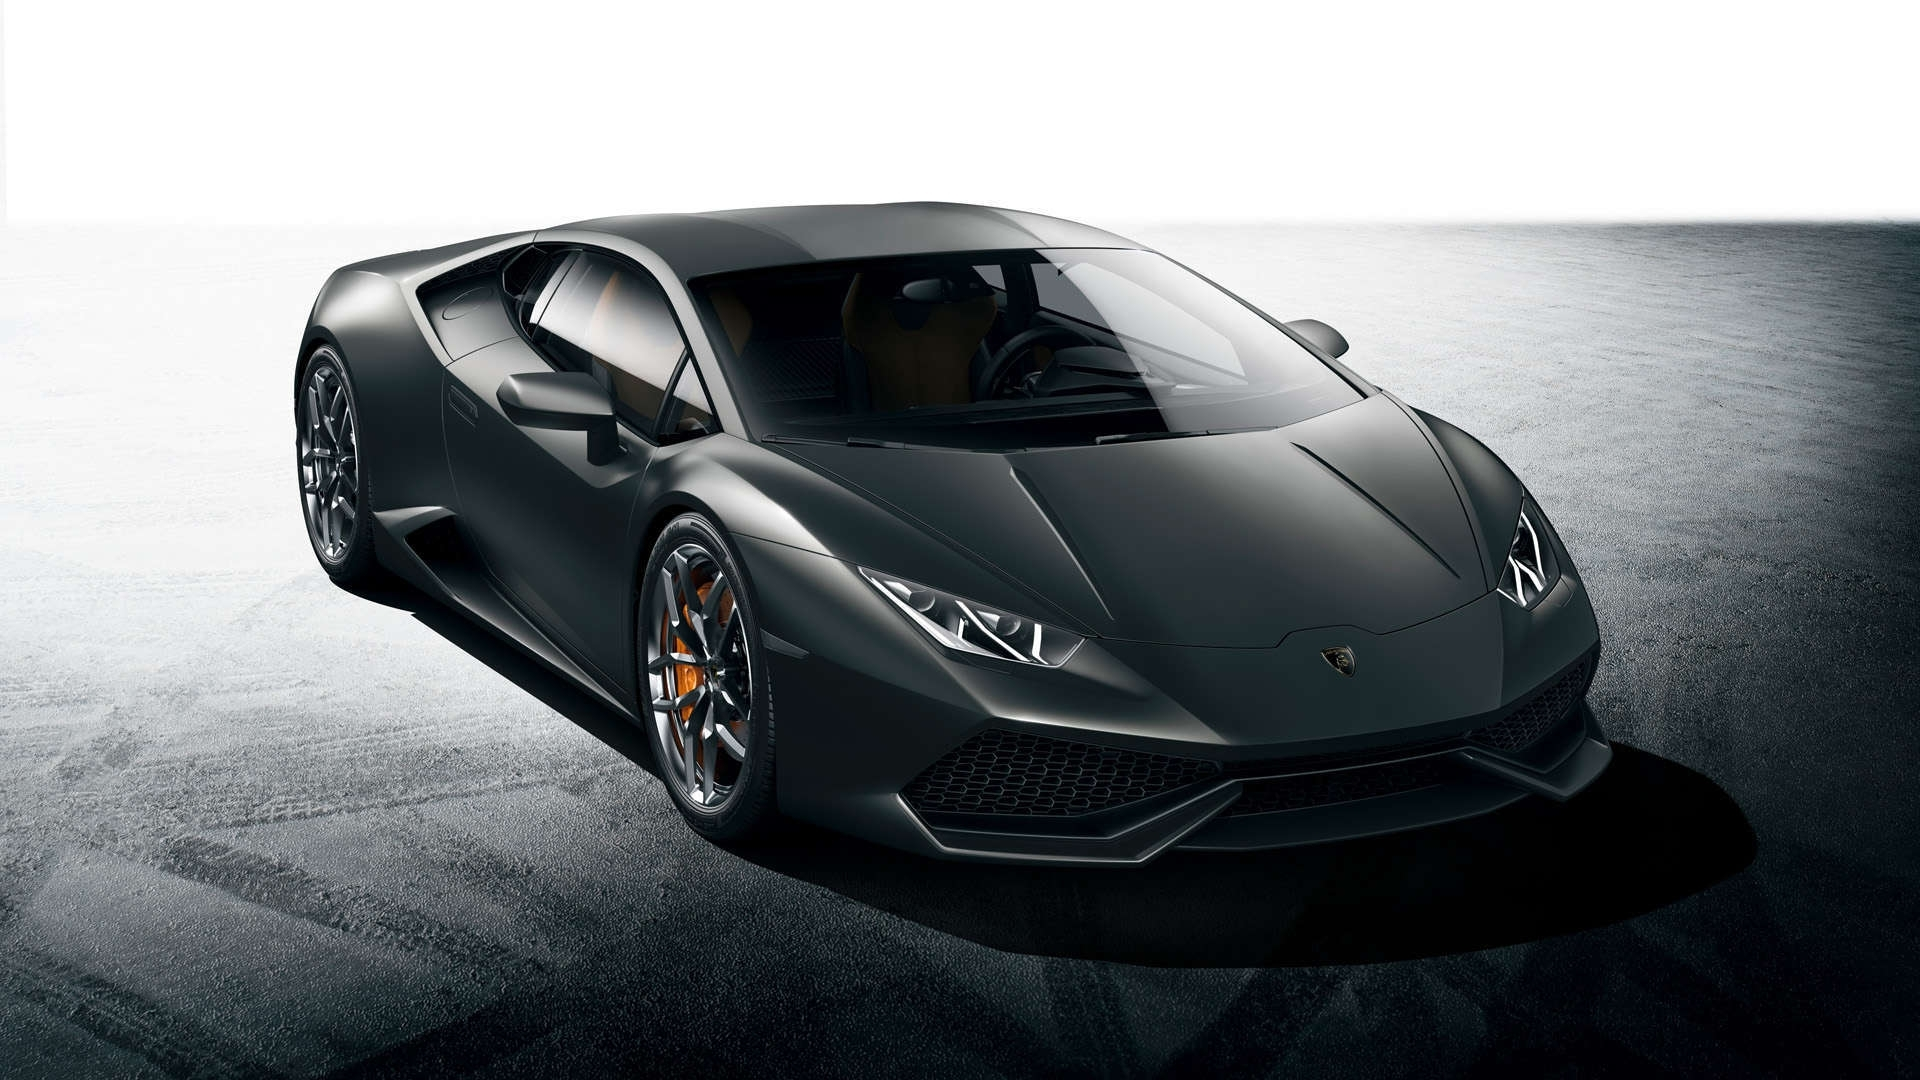 lamborghini huracan hd s 1080p wallpaper | 1920x1080 | #15264